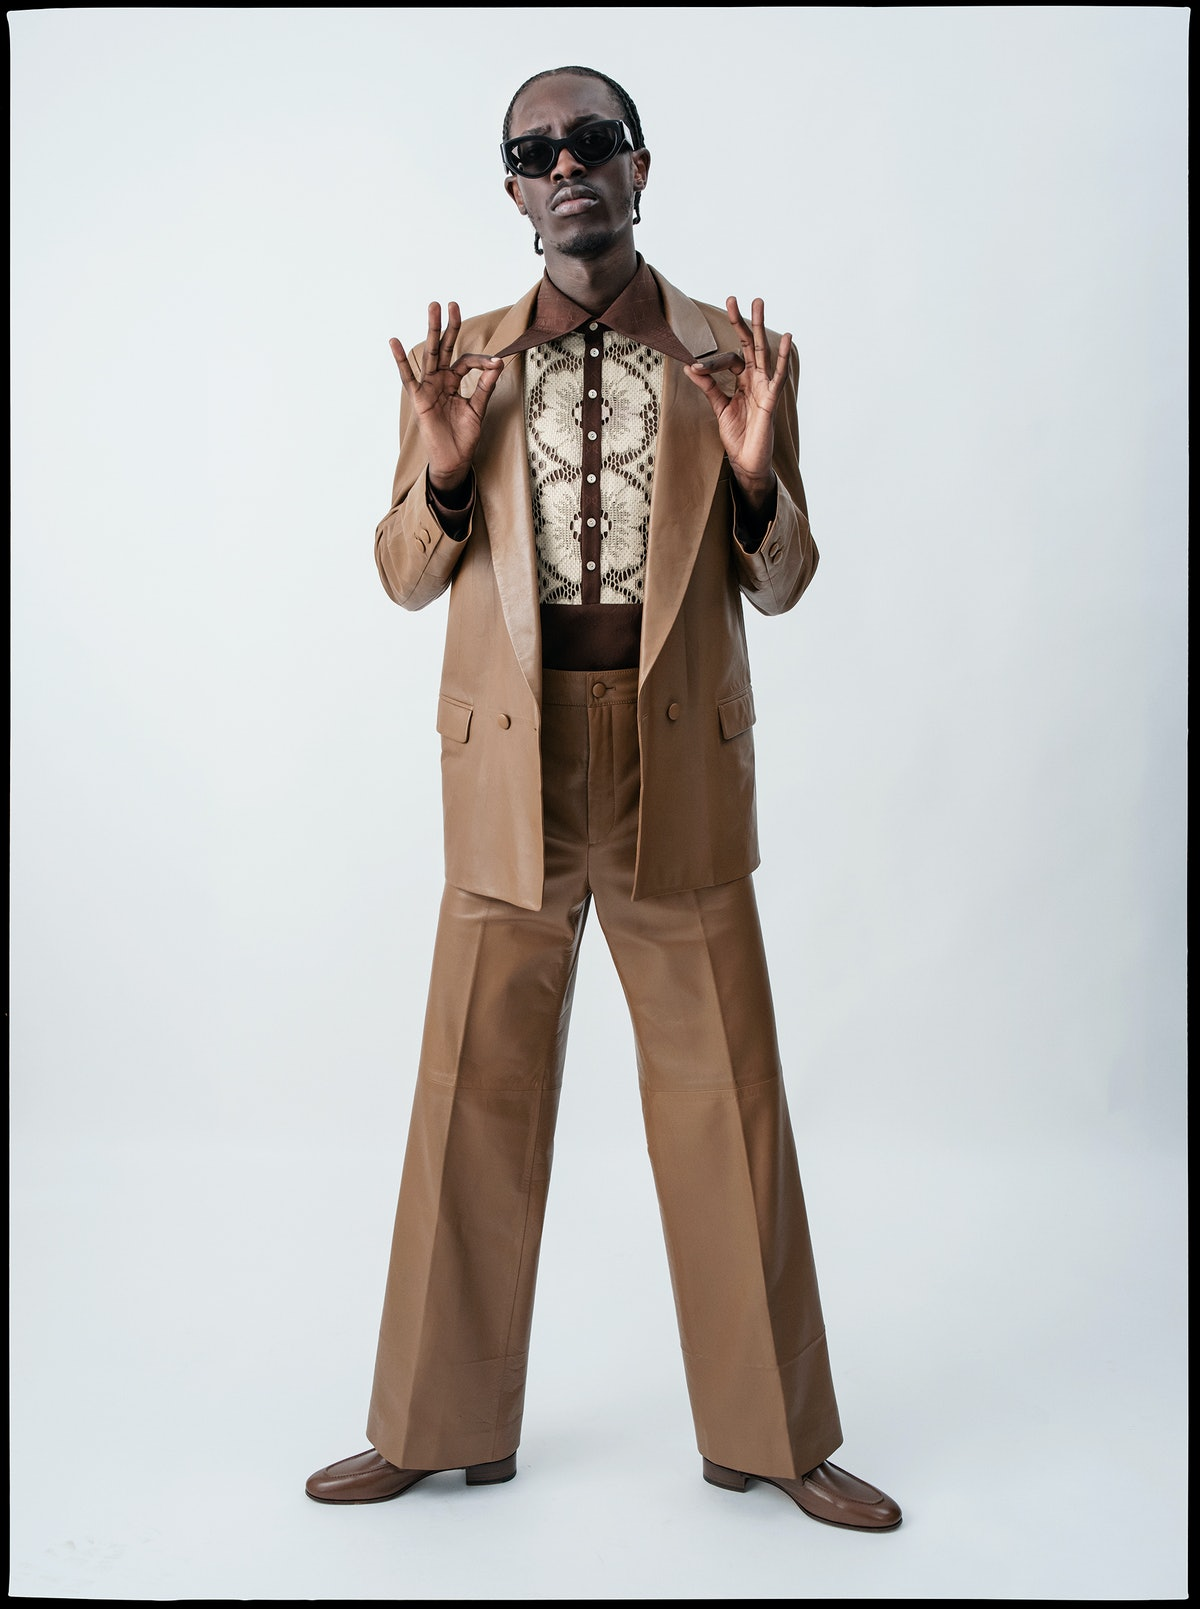 Unknown T wears a Gucci blazer, shirt, pants, and shoes.